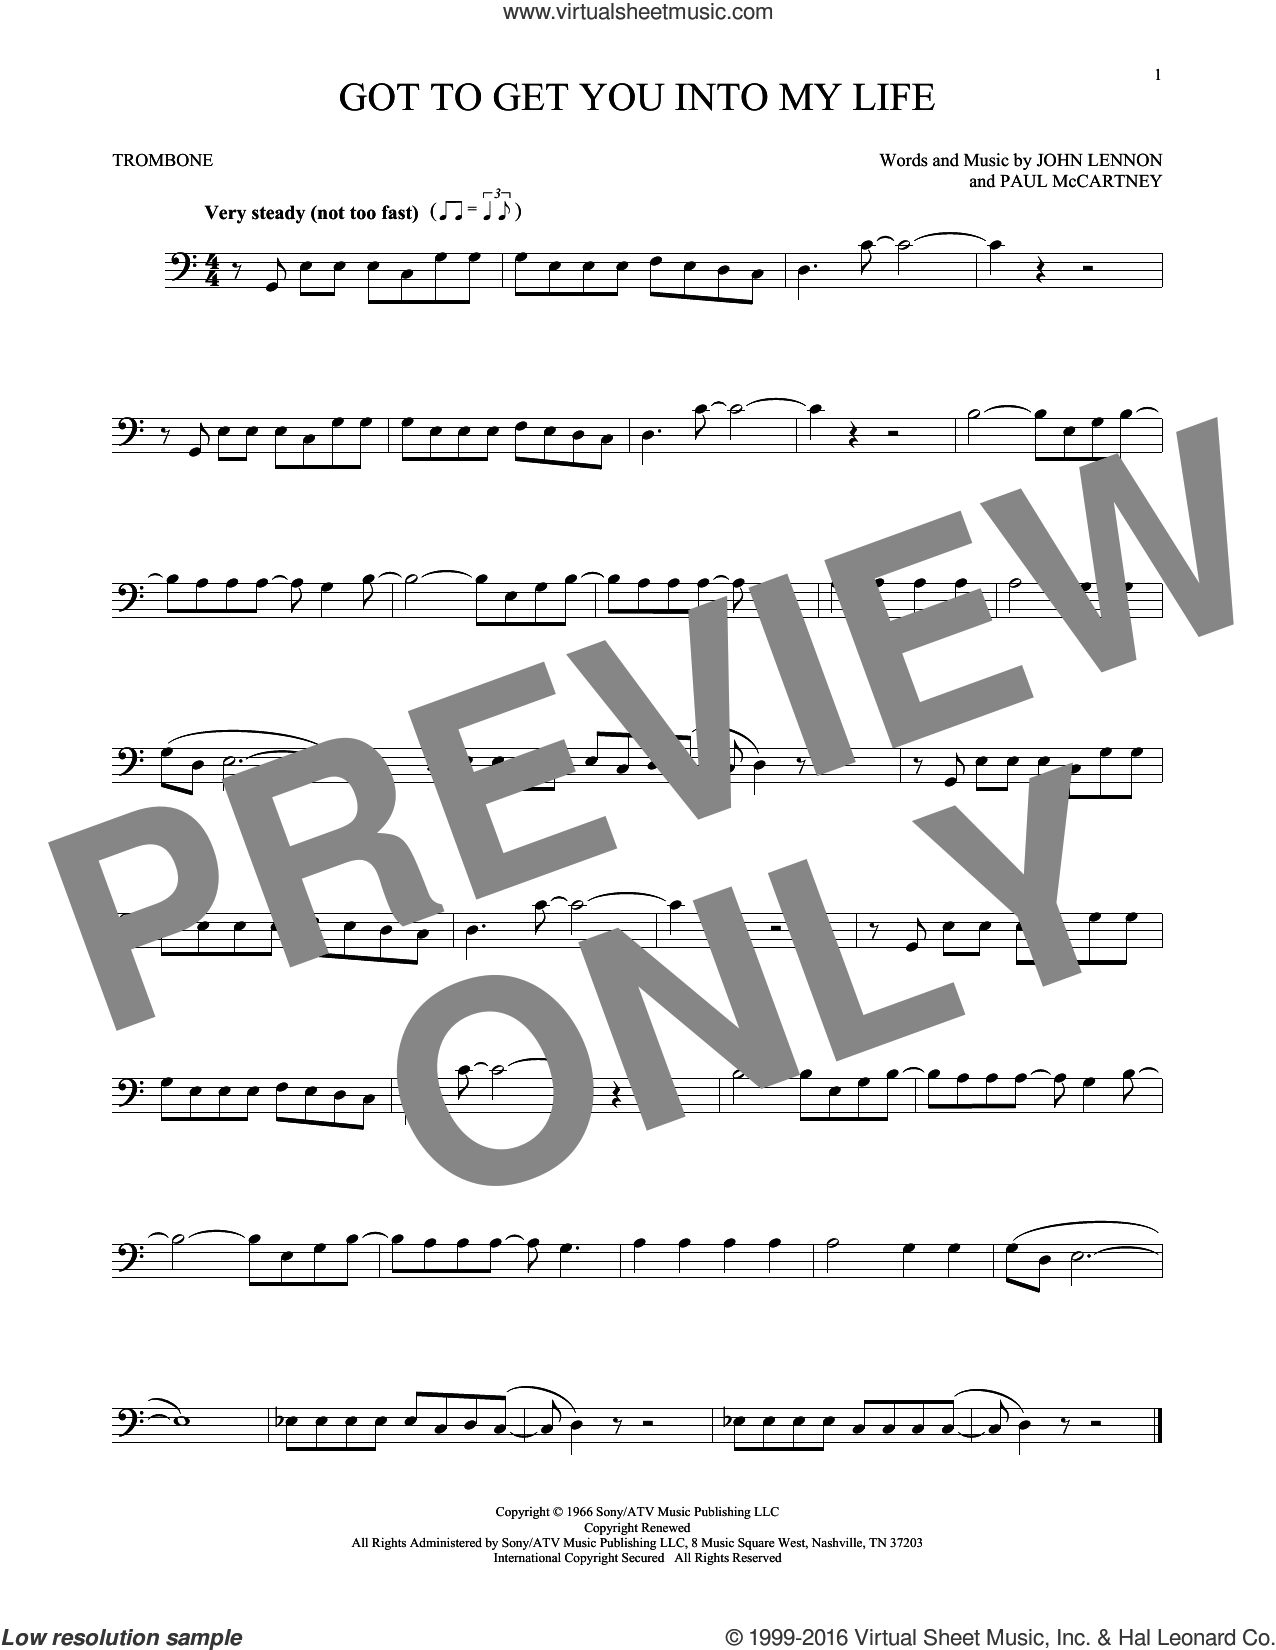 Got To Get You Into My Life sheet music for trombone solo by The Beatles, John Lennon and Paul McCartney, intermediate skill level